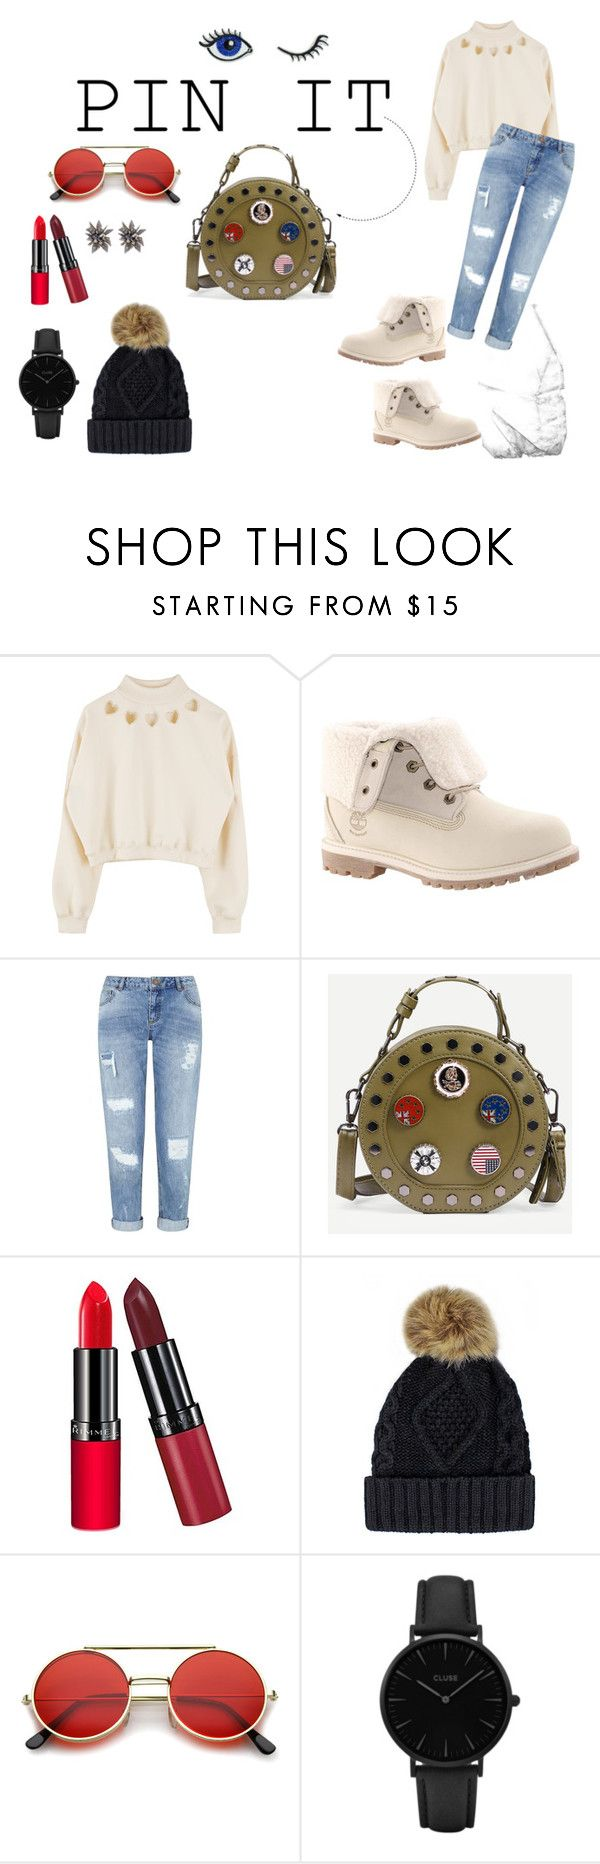 """""""PIN IT"""" by cc-carmen on Polyvore featuring moda, Timberland, Miss Selfridge, Rimmel, ZeroUV, CLUSE, Alexis Bittar, booties, pinit y wintersweater"""